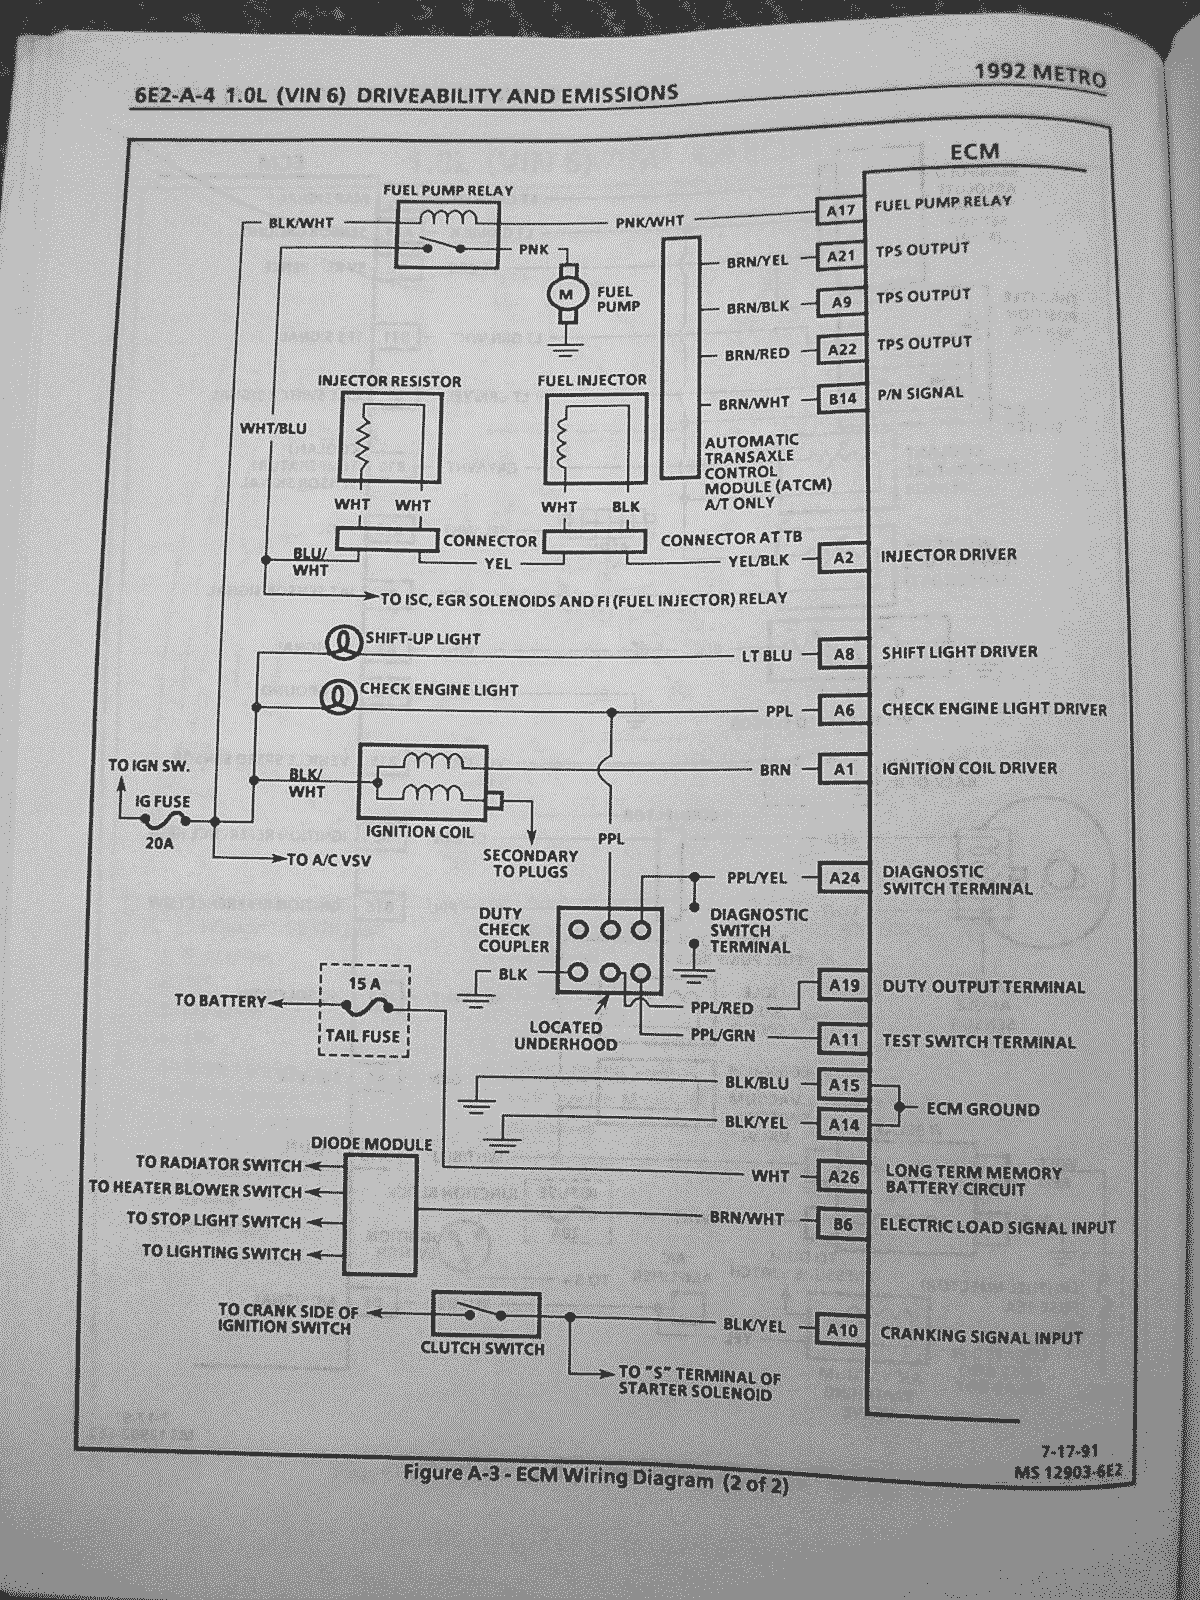 geo metro and suzuki swift wiring diagrams metroxfi com rh metroxfi com suzuki swift wiring diagram 2014 suzuki swift wiring diagram 2014